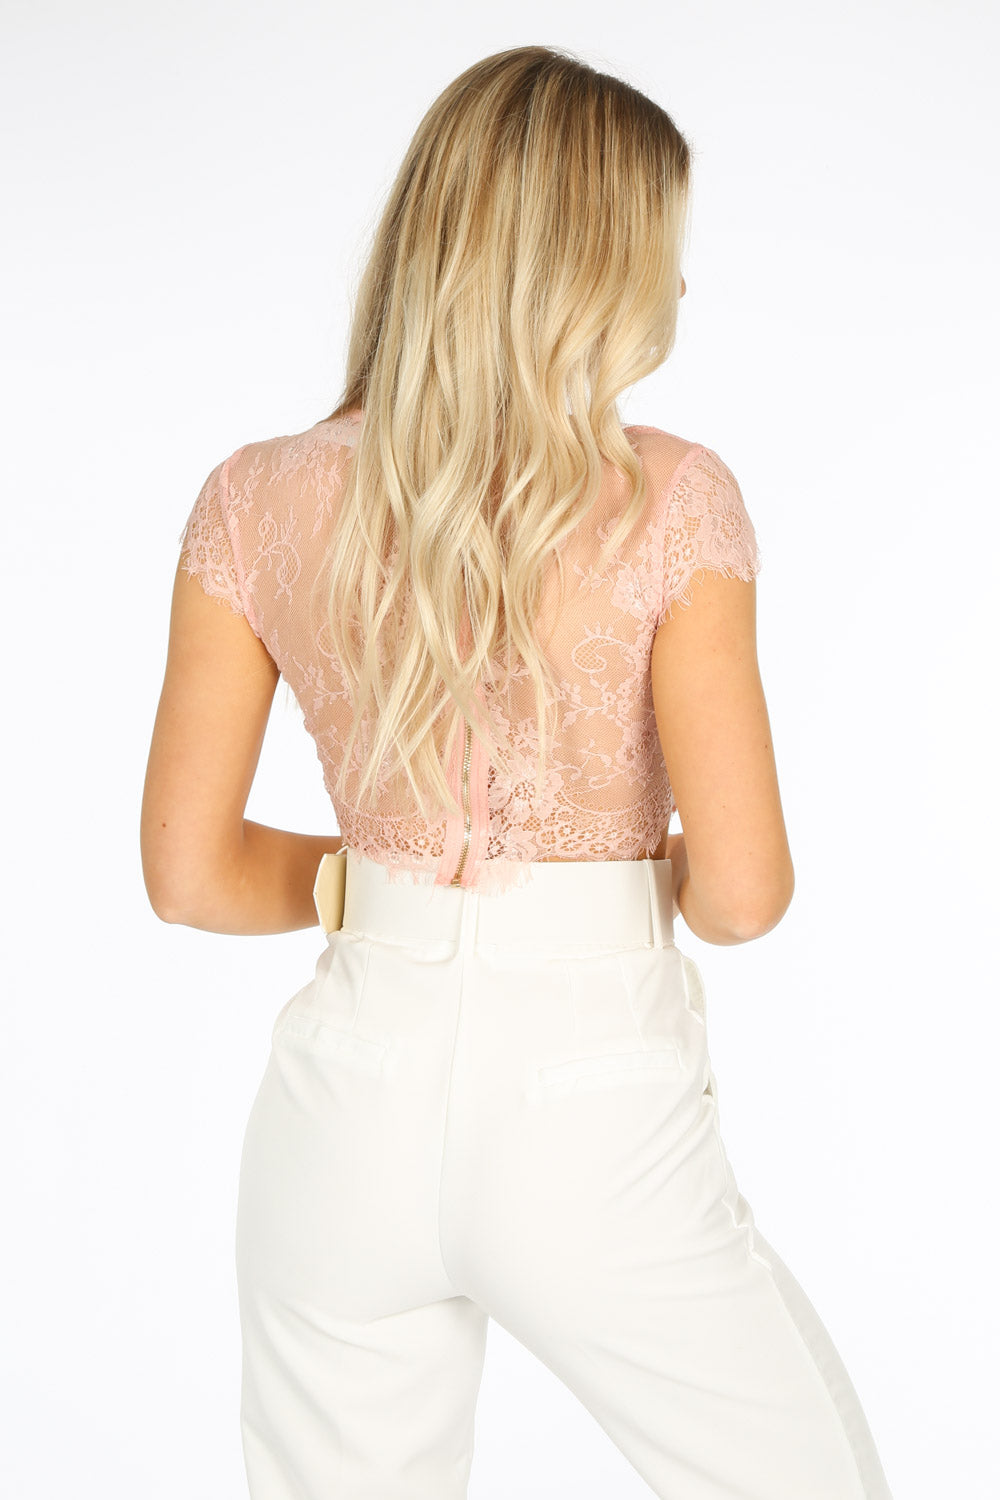 Sheer Lace Crop Top With Bralet In Pink